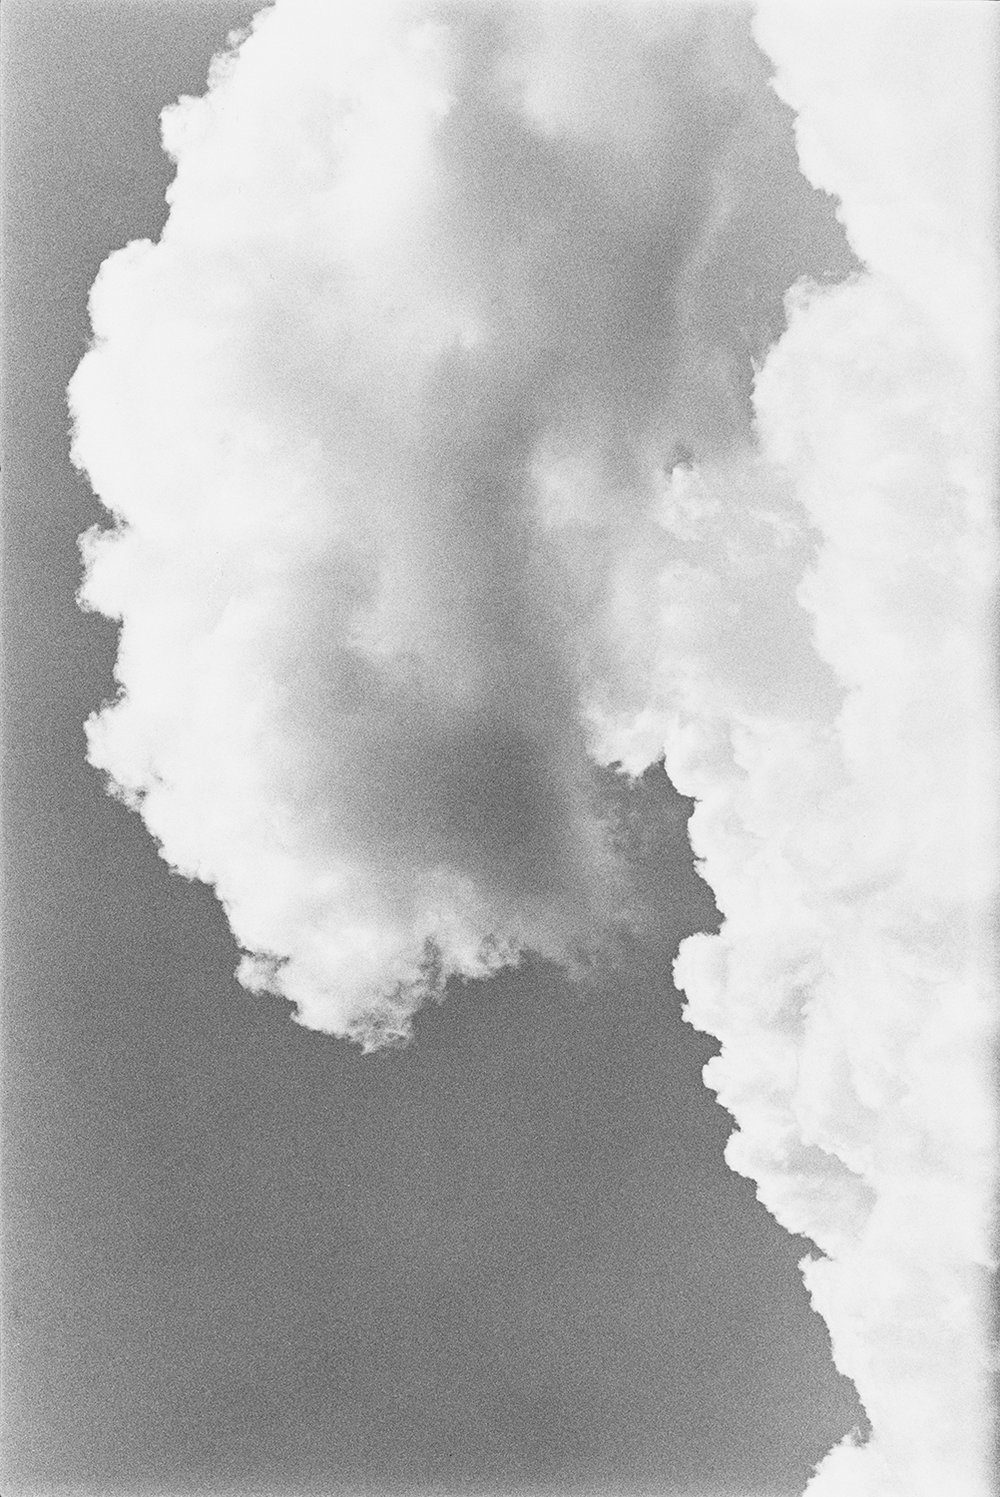 Cumulonimbus  (1986) from  T he Last Cosmology    (2015) by Kikuji Kawada, published by MACK   mackbooks.co.uk